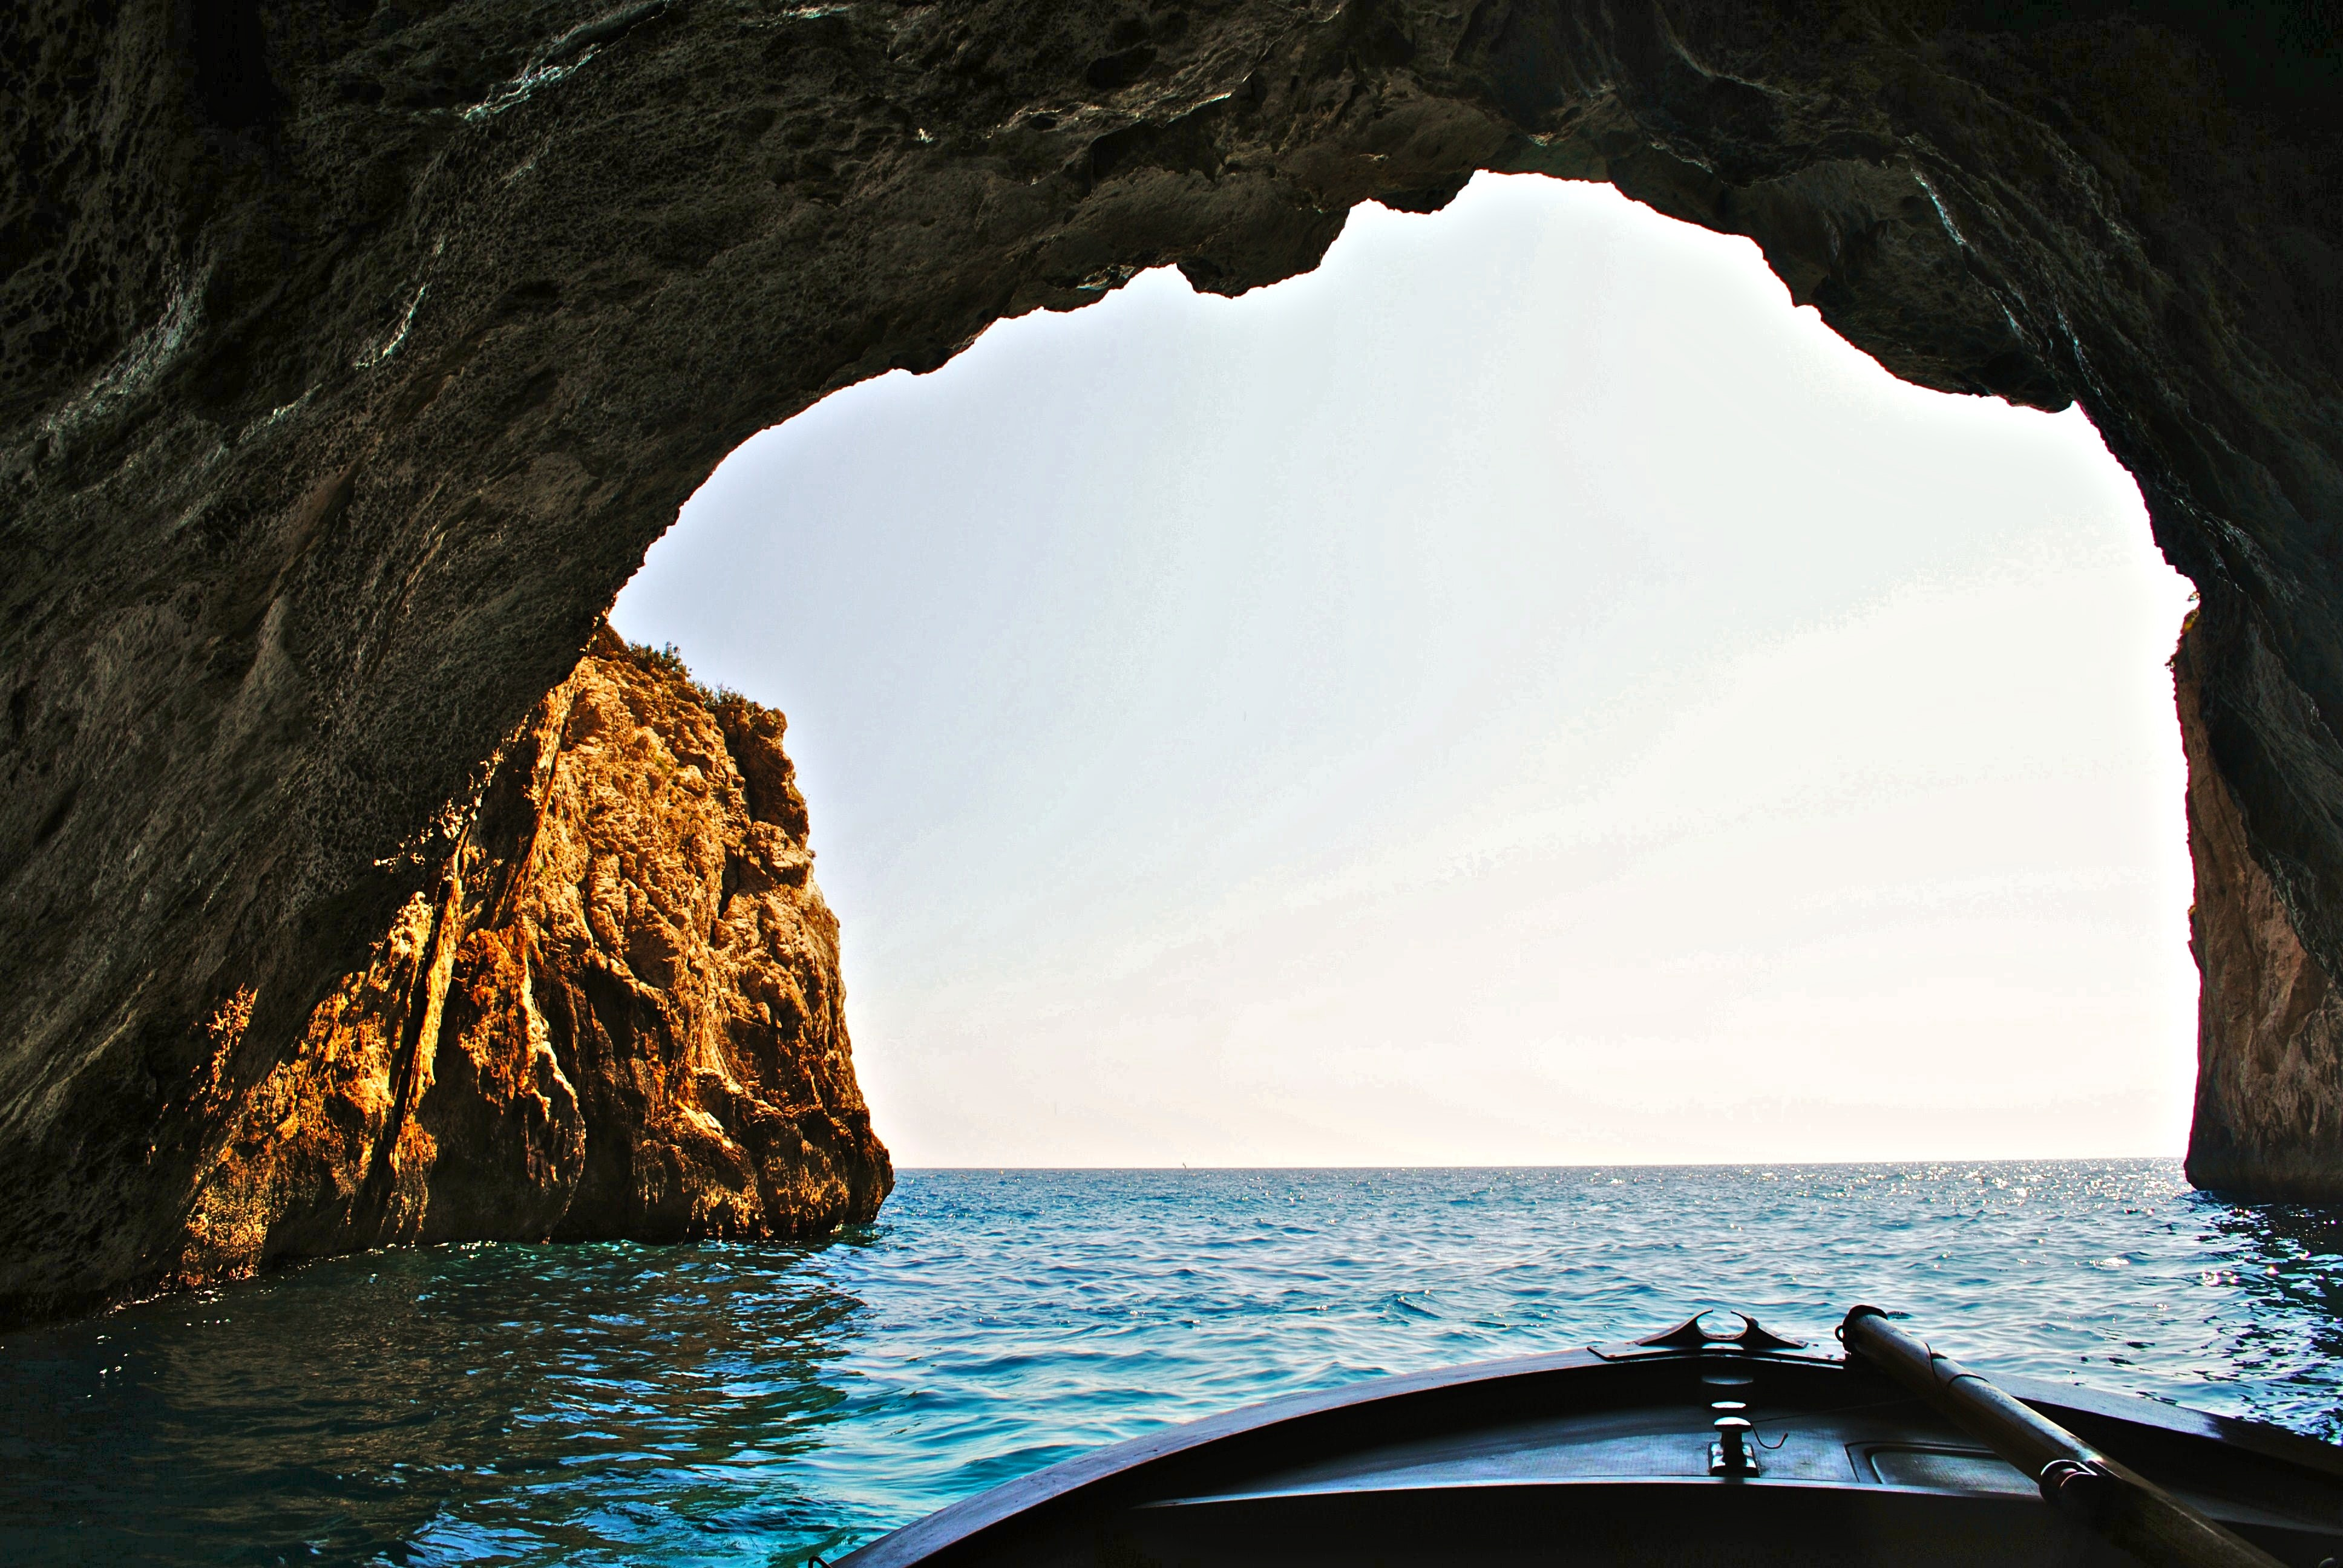 The bow of a boat on a lake inside of a cave looking out towards the opening